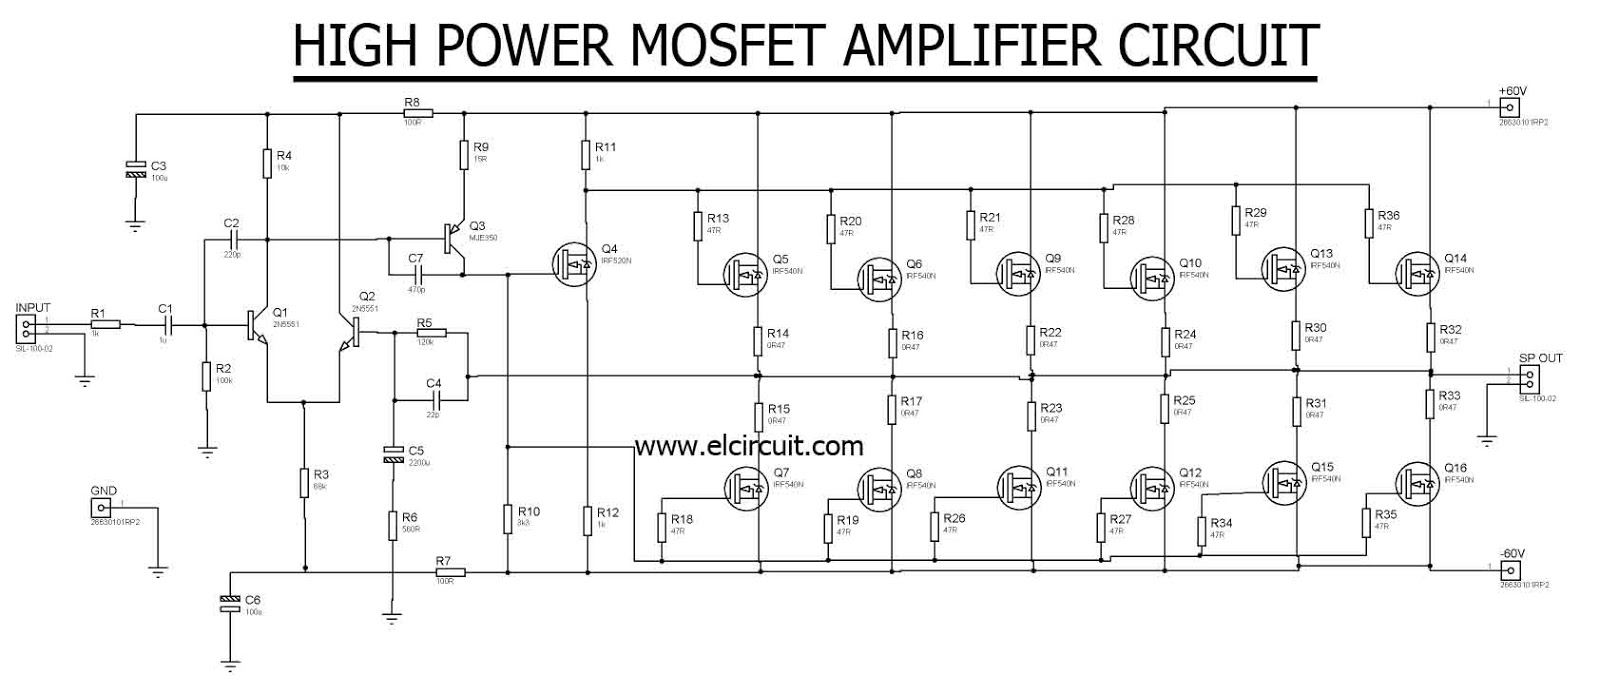 medium resolution of high power mosfet amplifier irf540n electronic circuit schematic diagram circuit of high power amplifier high power amplifier circuit diagram